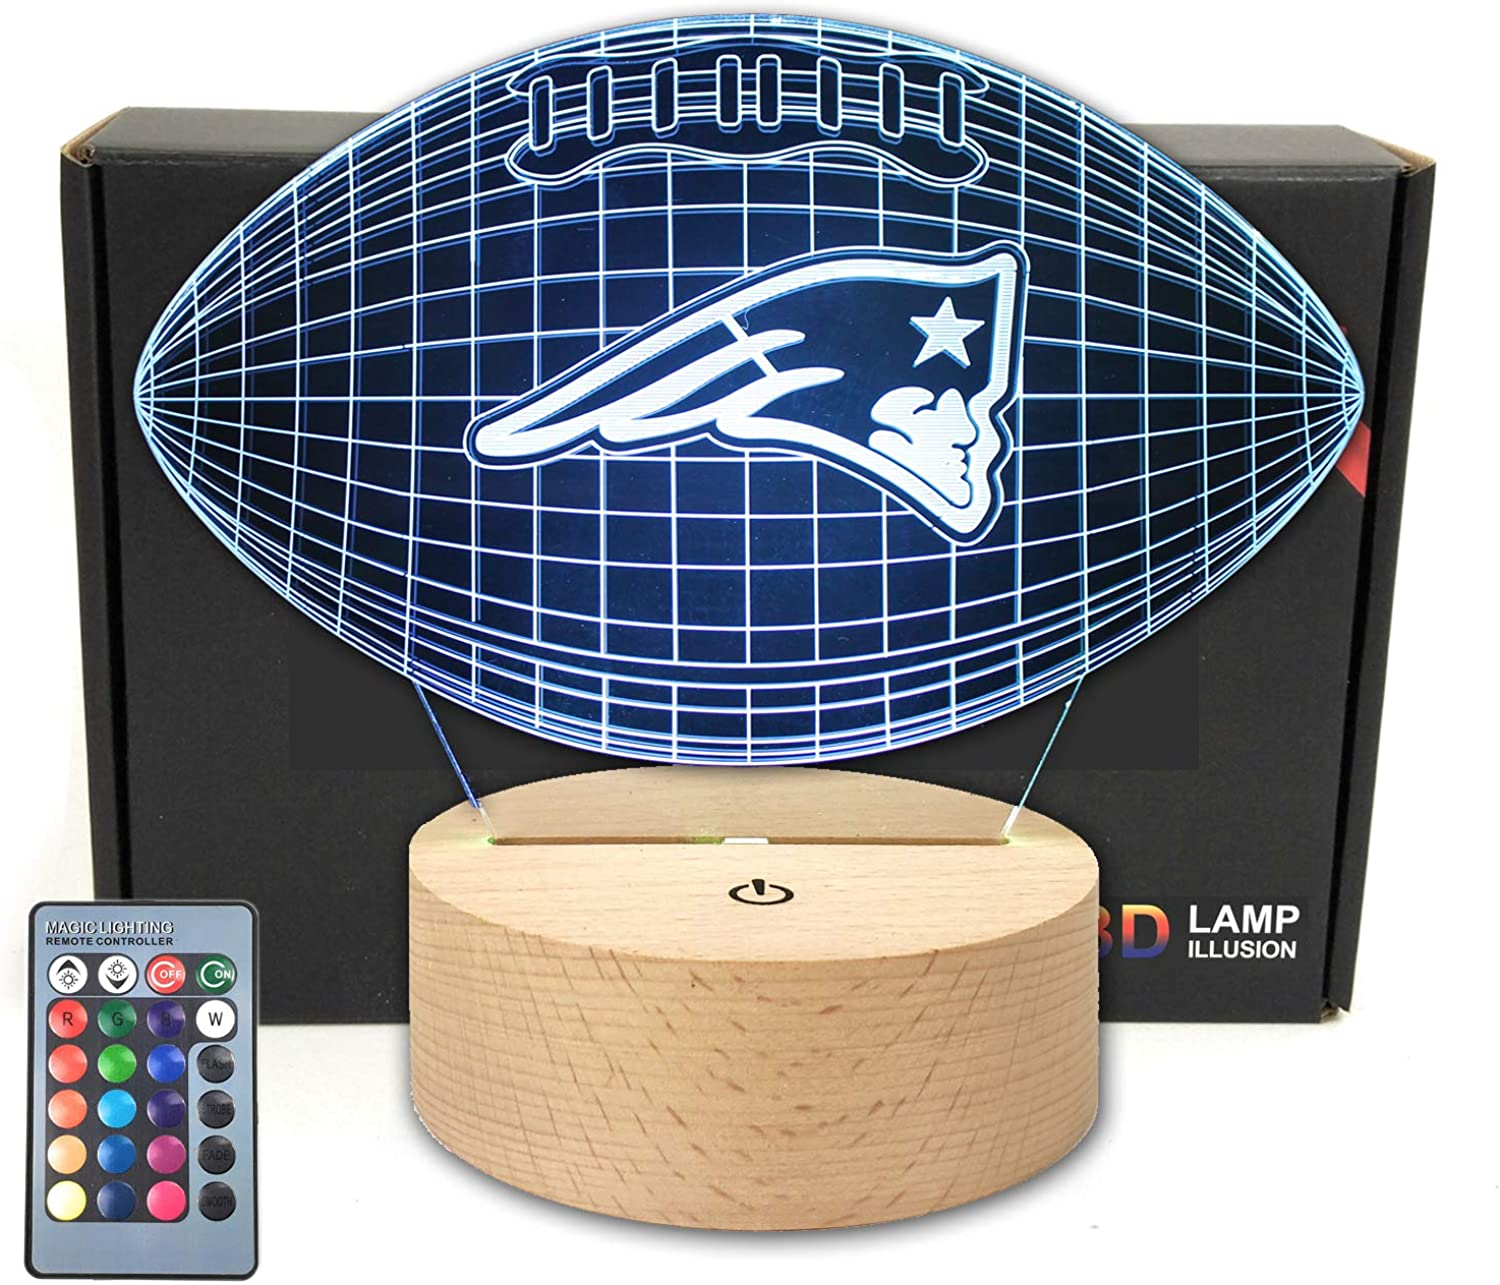 Remote Football Shape 3D Optical Illusion Night Light 7 Colors LED Table Lamp for Patriots Football Fans Gift with Wooden Base